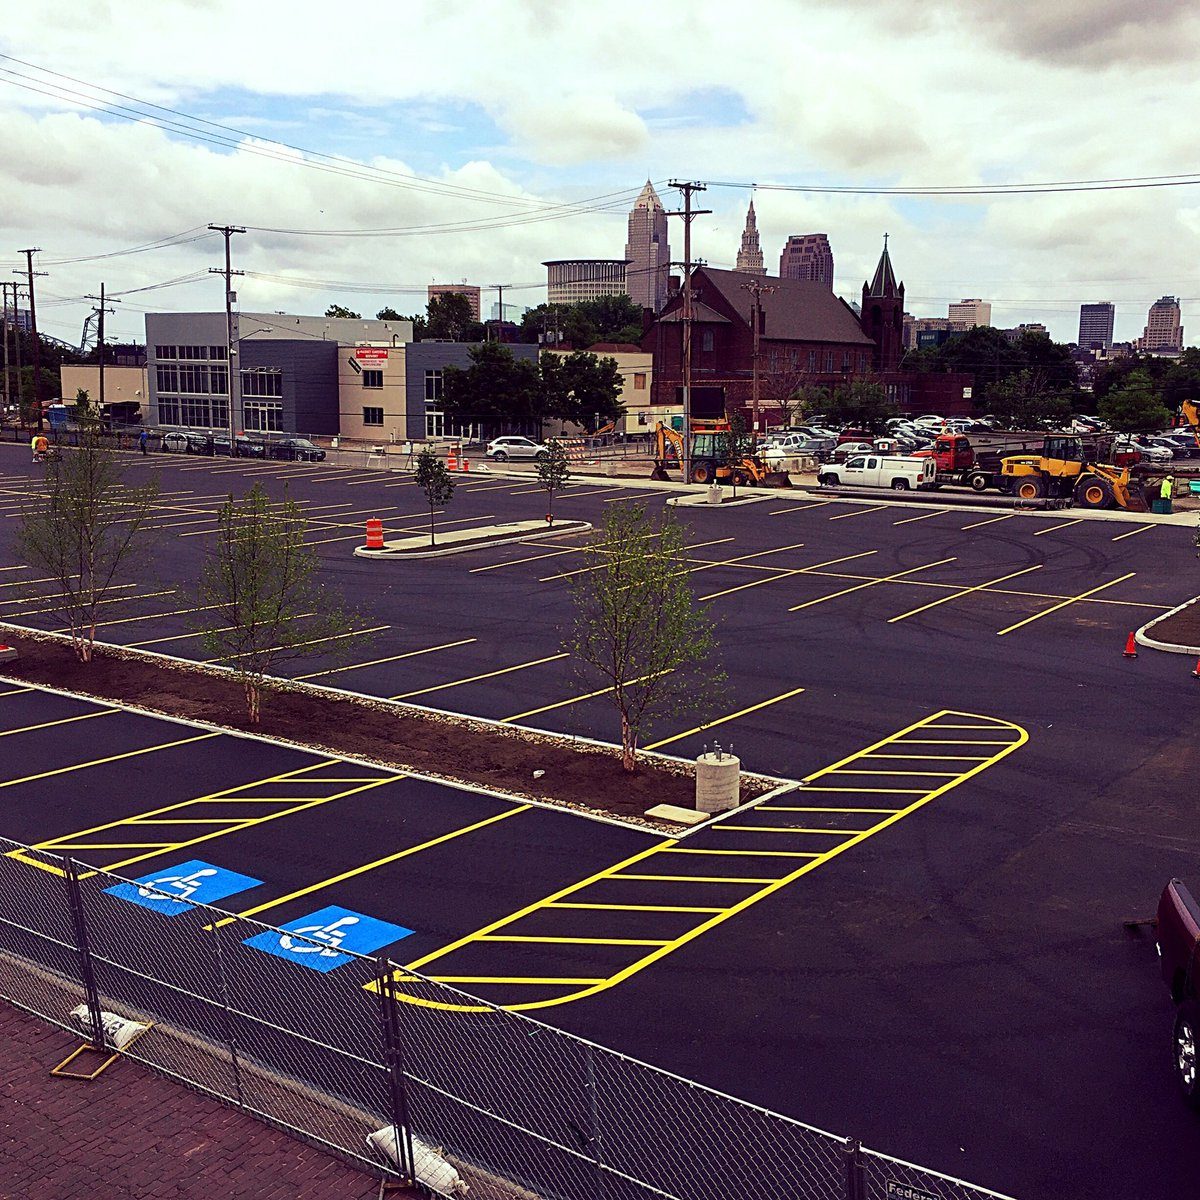 Parking lot phase 1 improvement/expansion nearly done! Next up, our Retail Store & Tours coming to @ohiocitytweets https://t.co/yiIp9Ahw9H